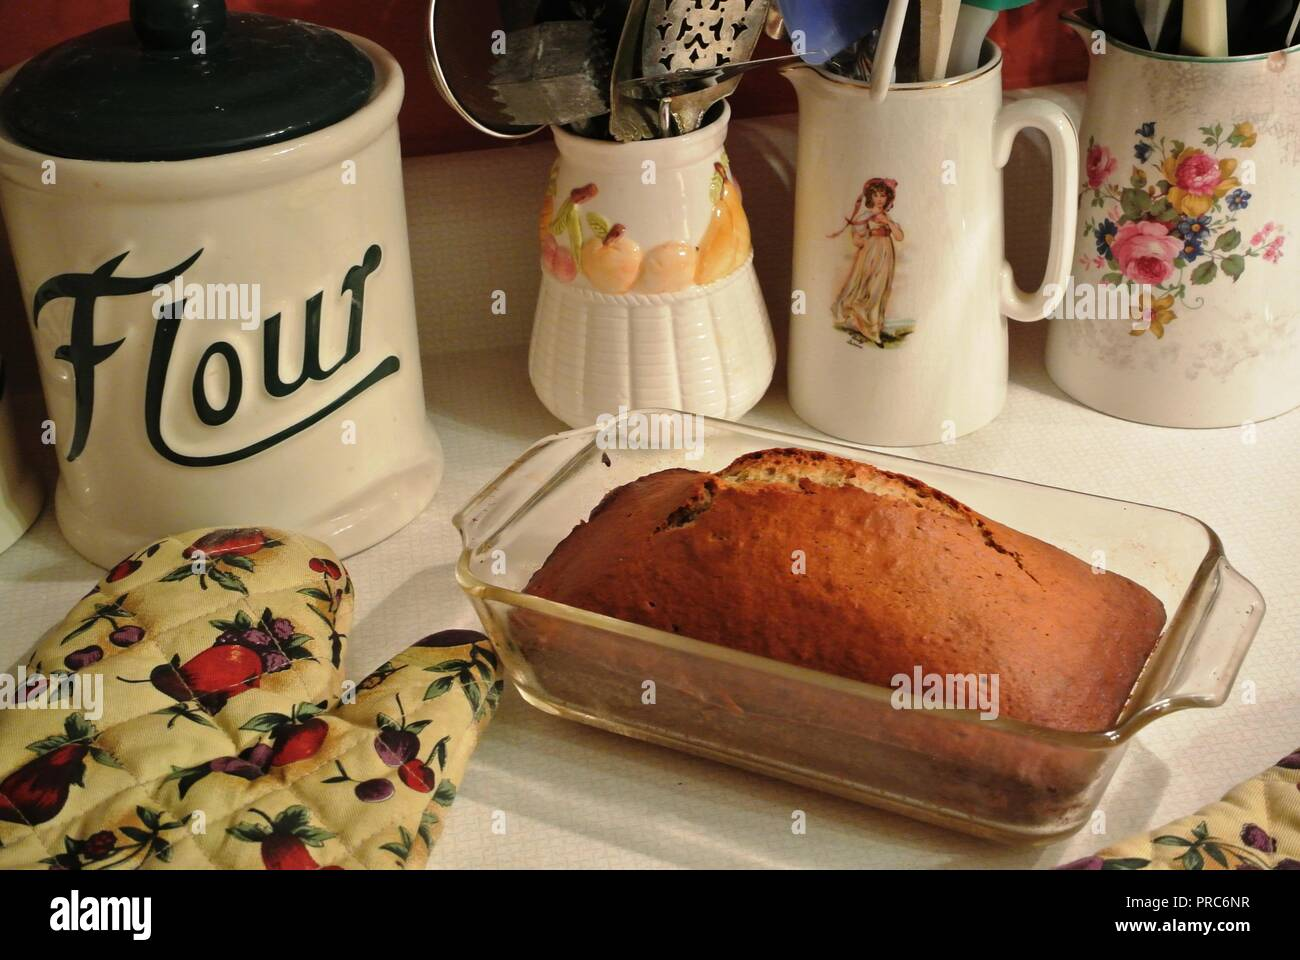 Freshly baked  loaf of a banana bread in a glass container surrounded by a colorful kitchen mitt, flour pot and utensils, warm ambiance, baking & cook - Stock Image